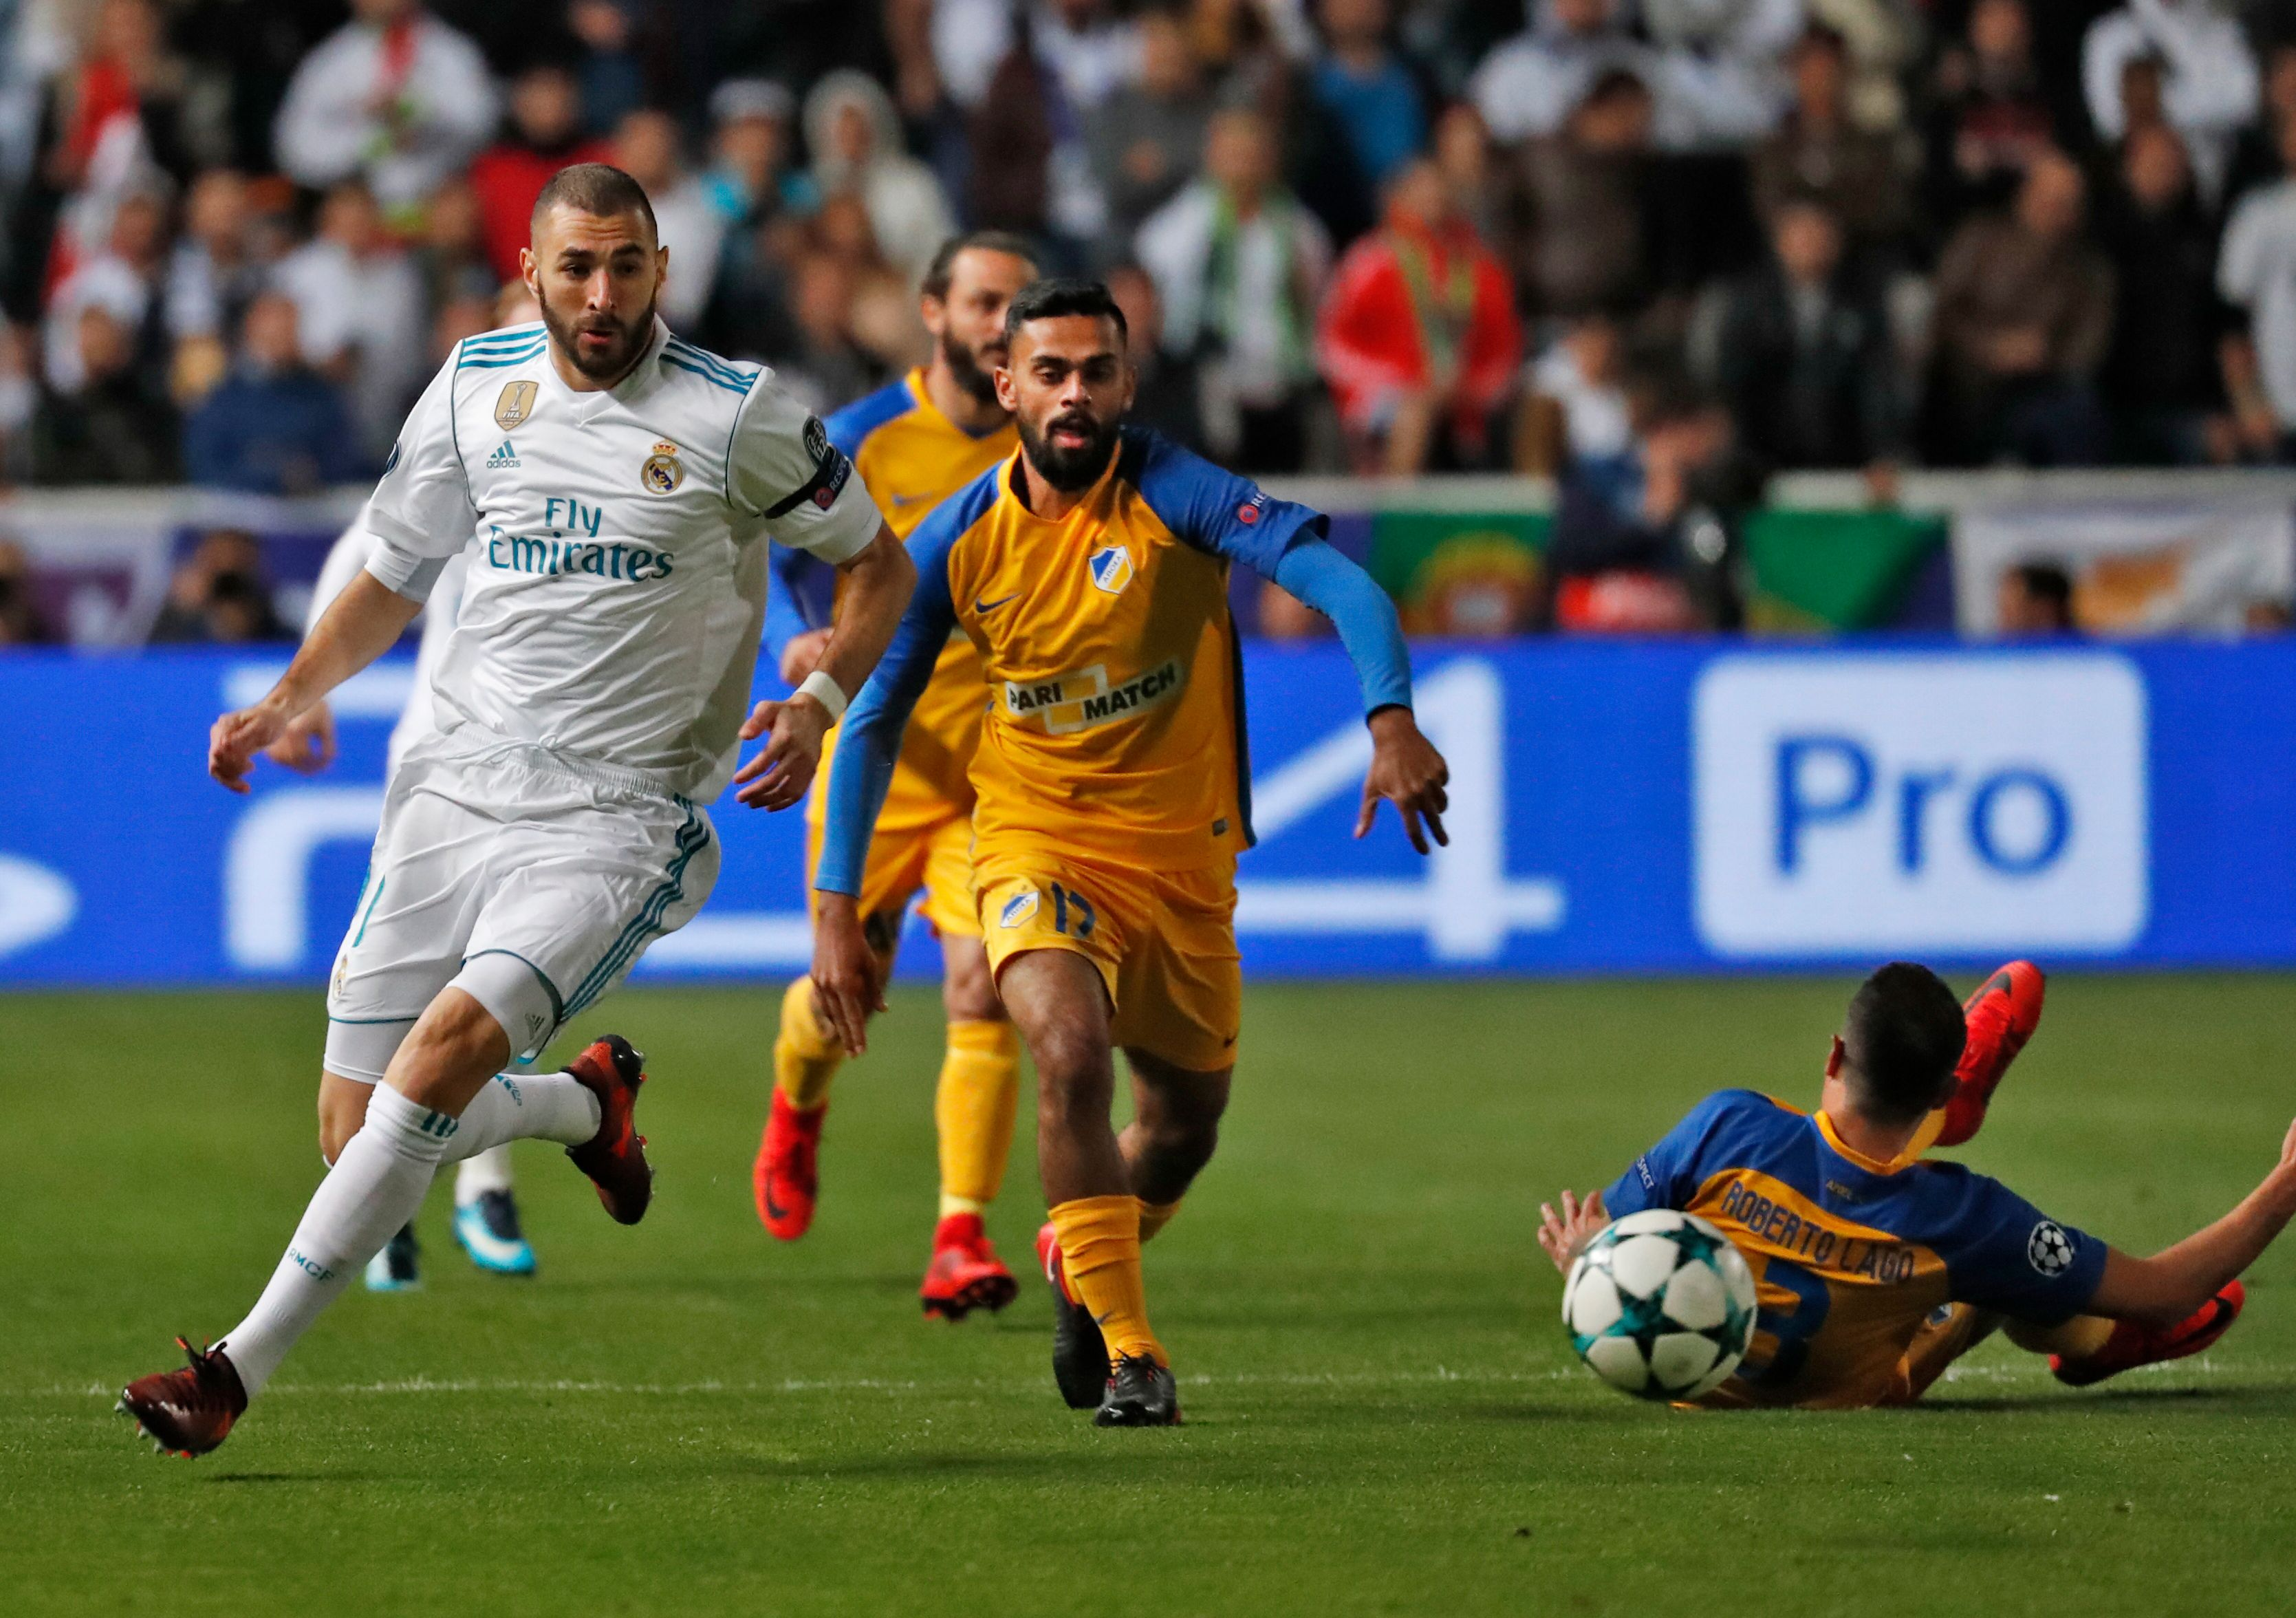 APOEL vs Real Madrid